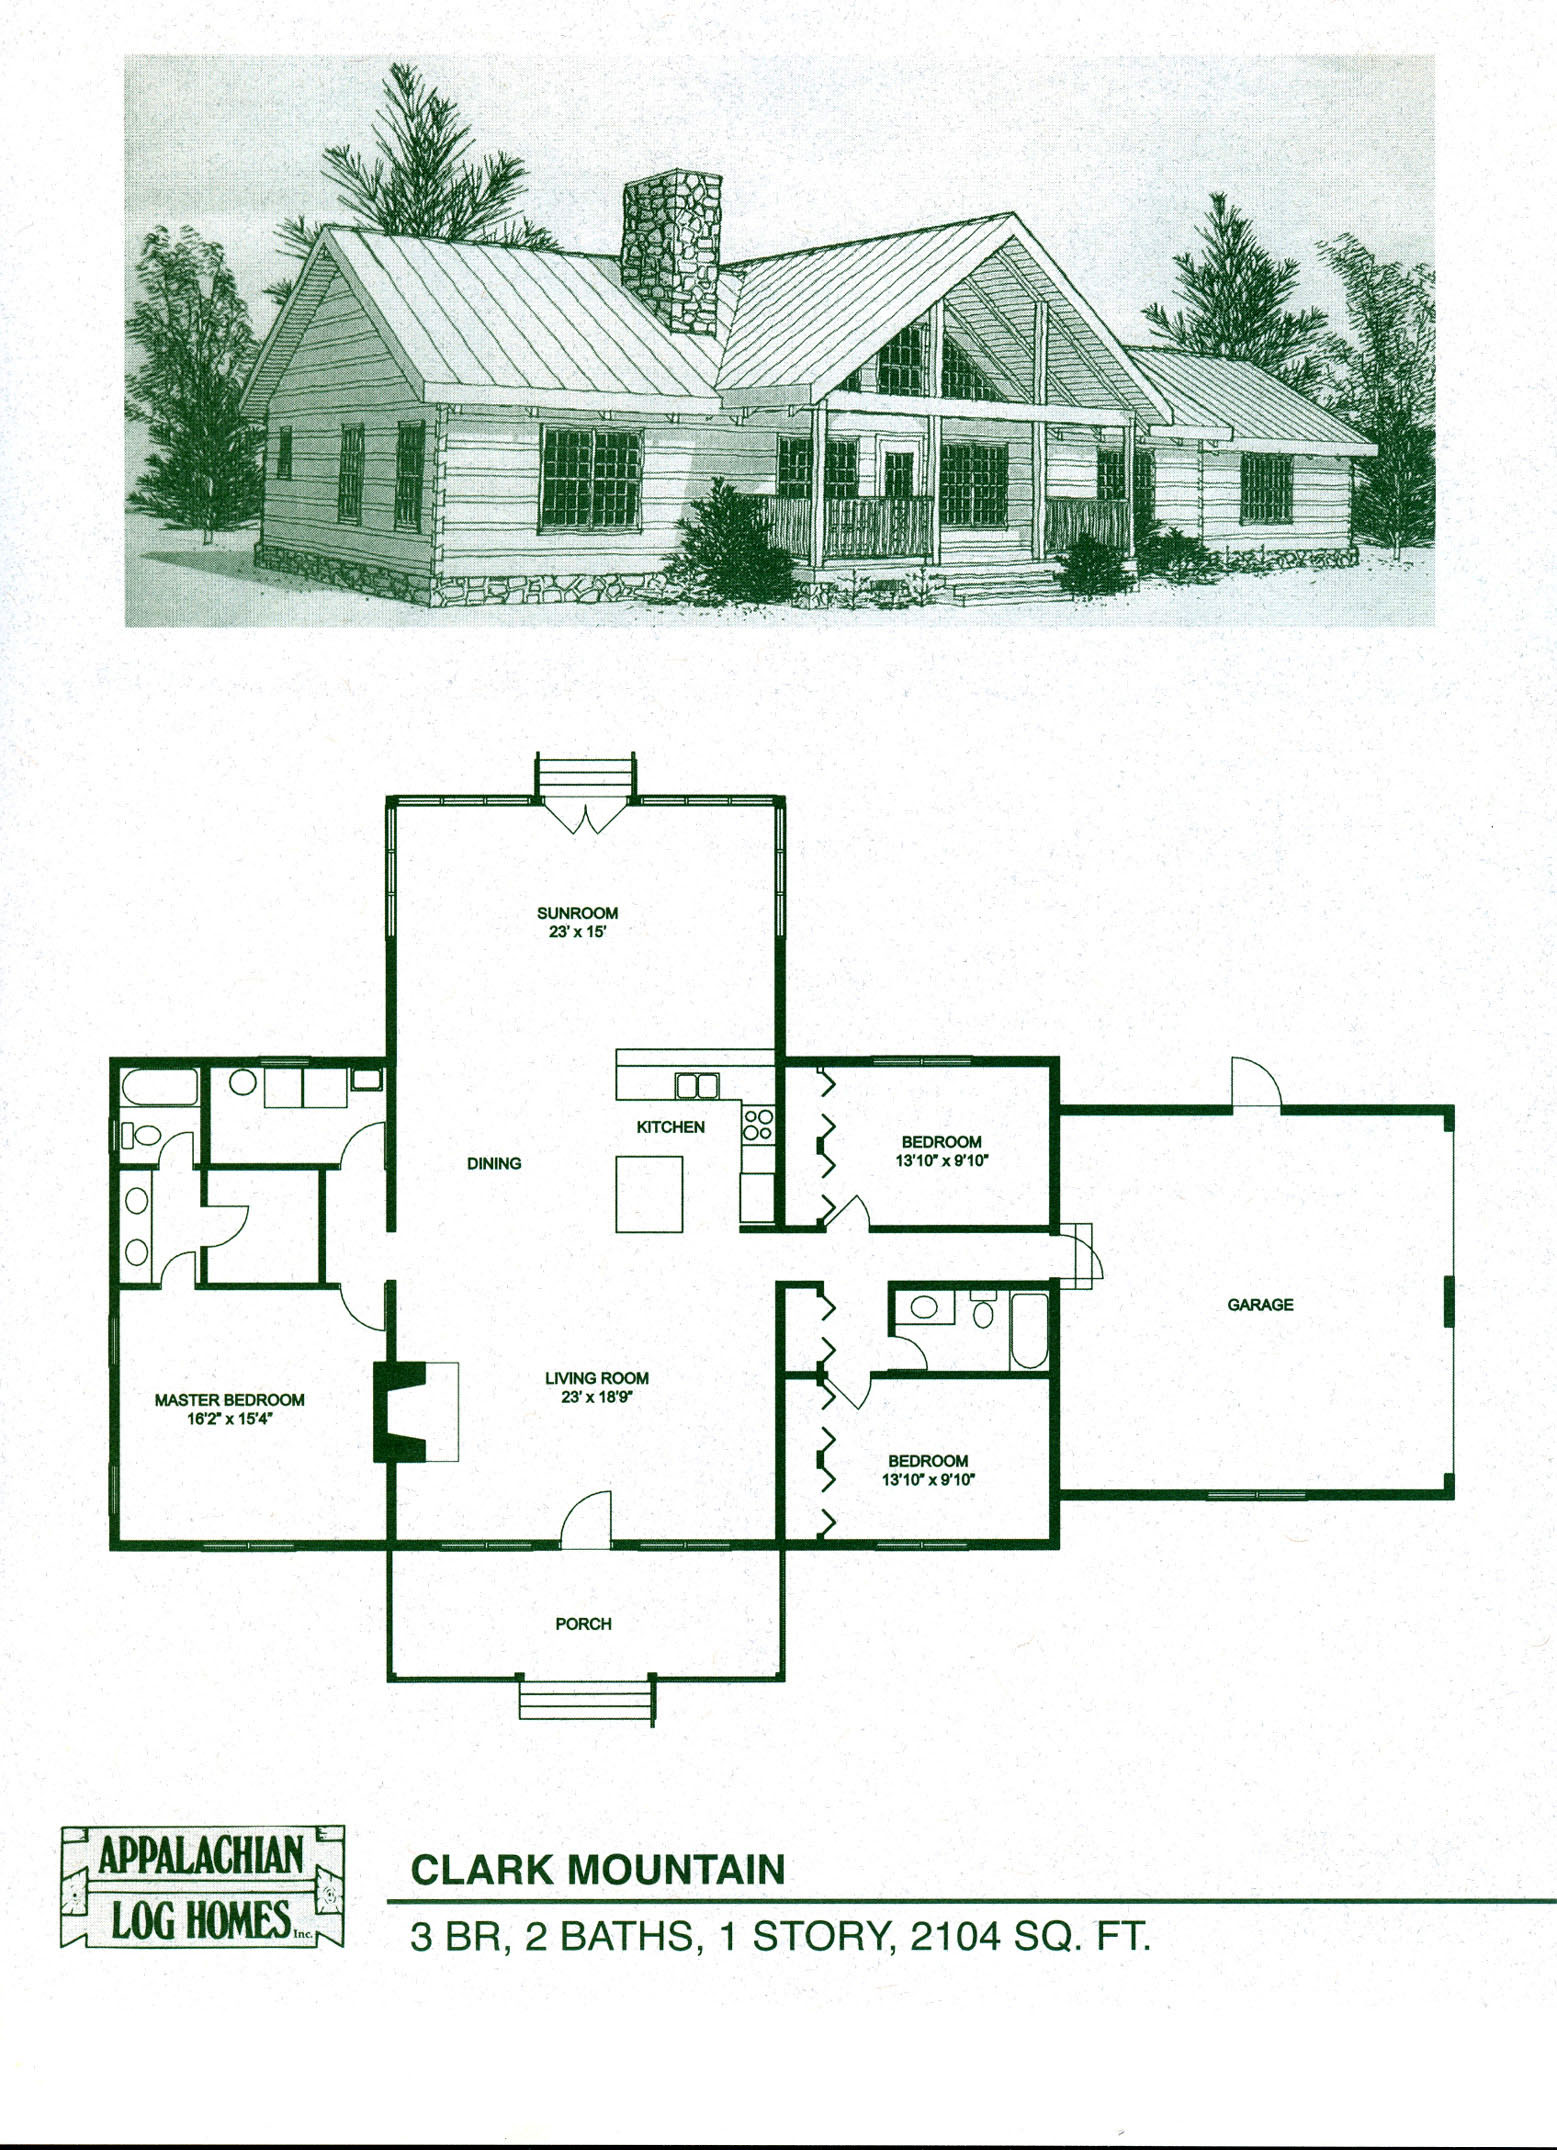 Log cabin loft 2 bedroom log cabin homes floor plans log for One bedroom home kits